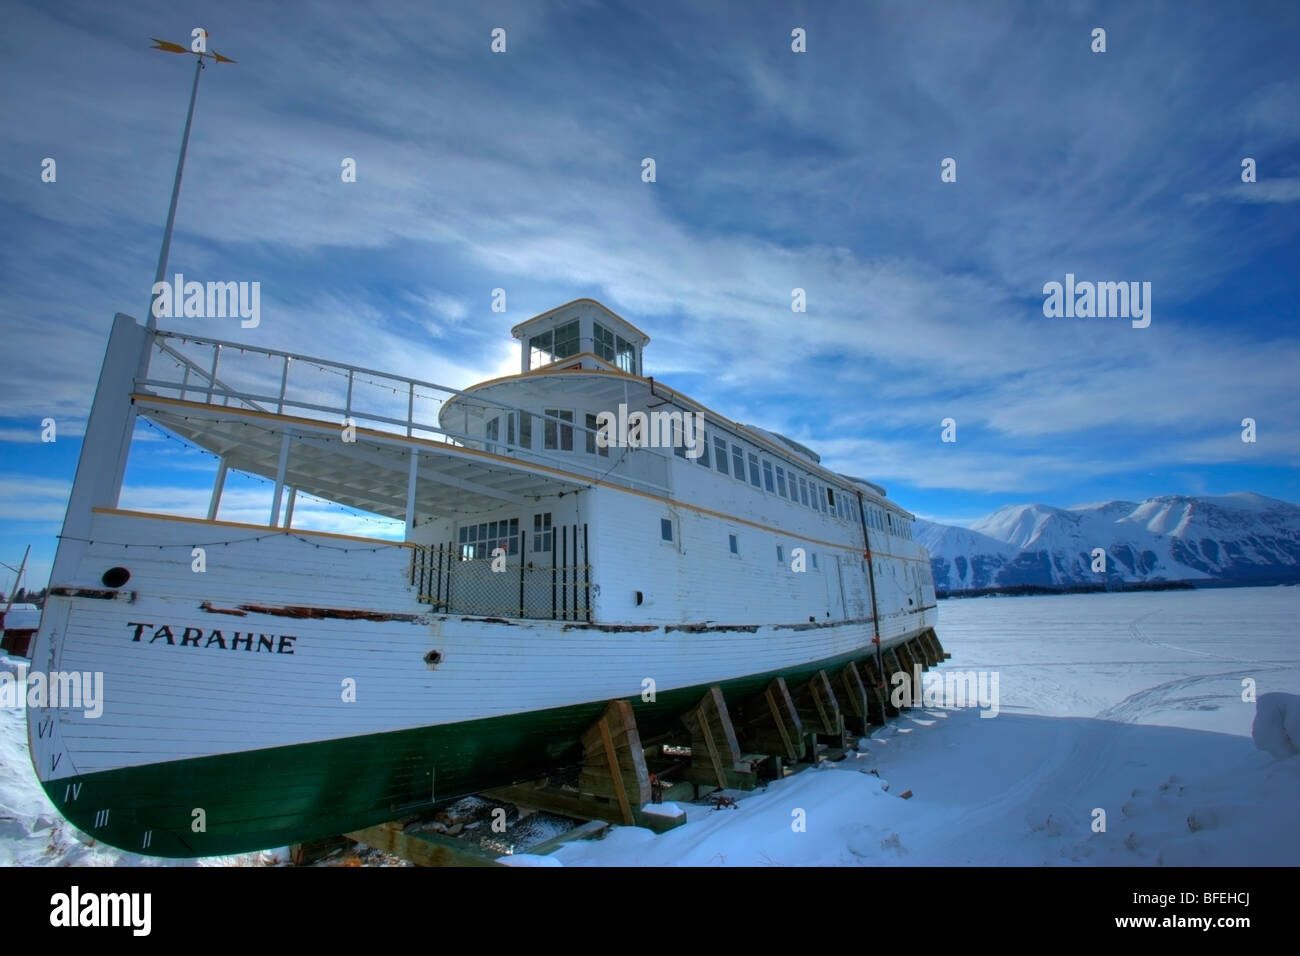 The old sternwheeler Tarahne that sits on the shores of Atlin Lake, British Columbia, Canada - Stock Image